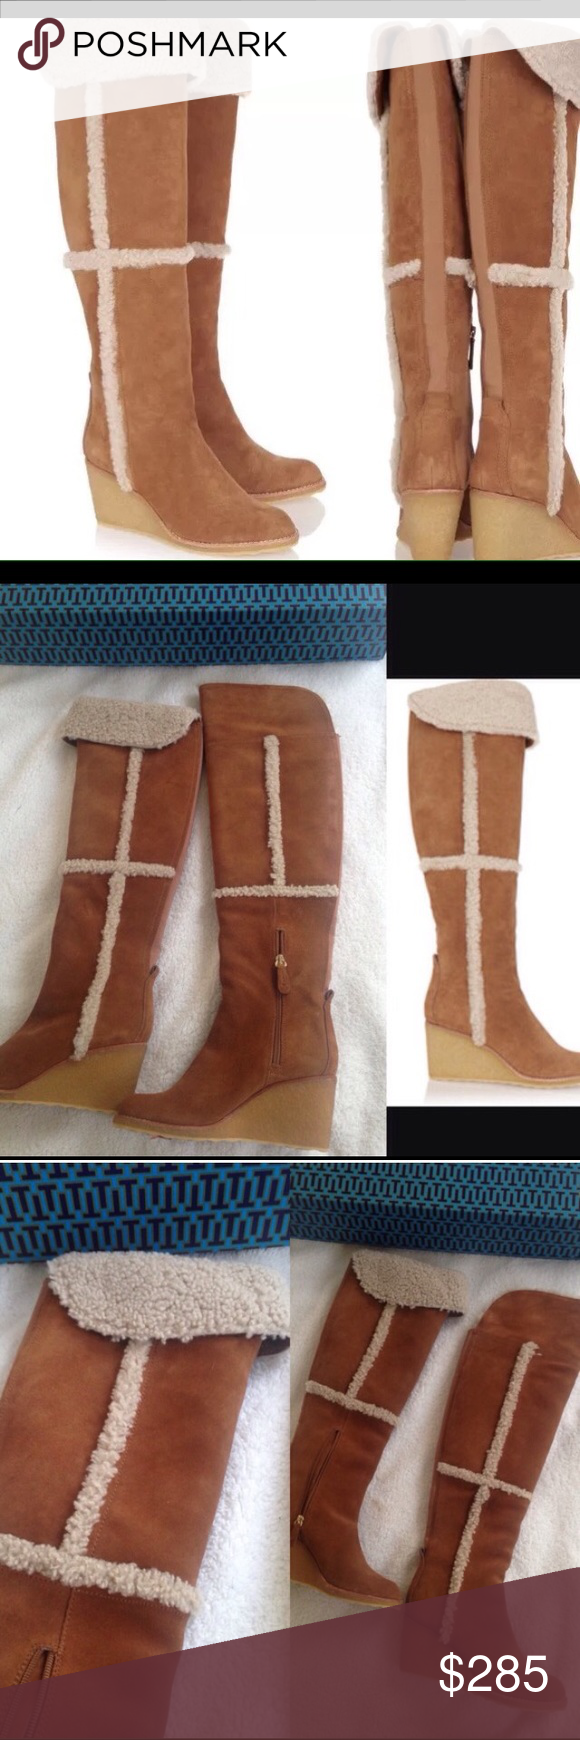 02a9208ce9827 New Tory Burch Cassius Shearling Boots Sz 6 and 7 BRAND NEW TORY BURCH  SHEARLING CASSIUS